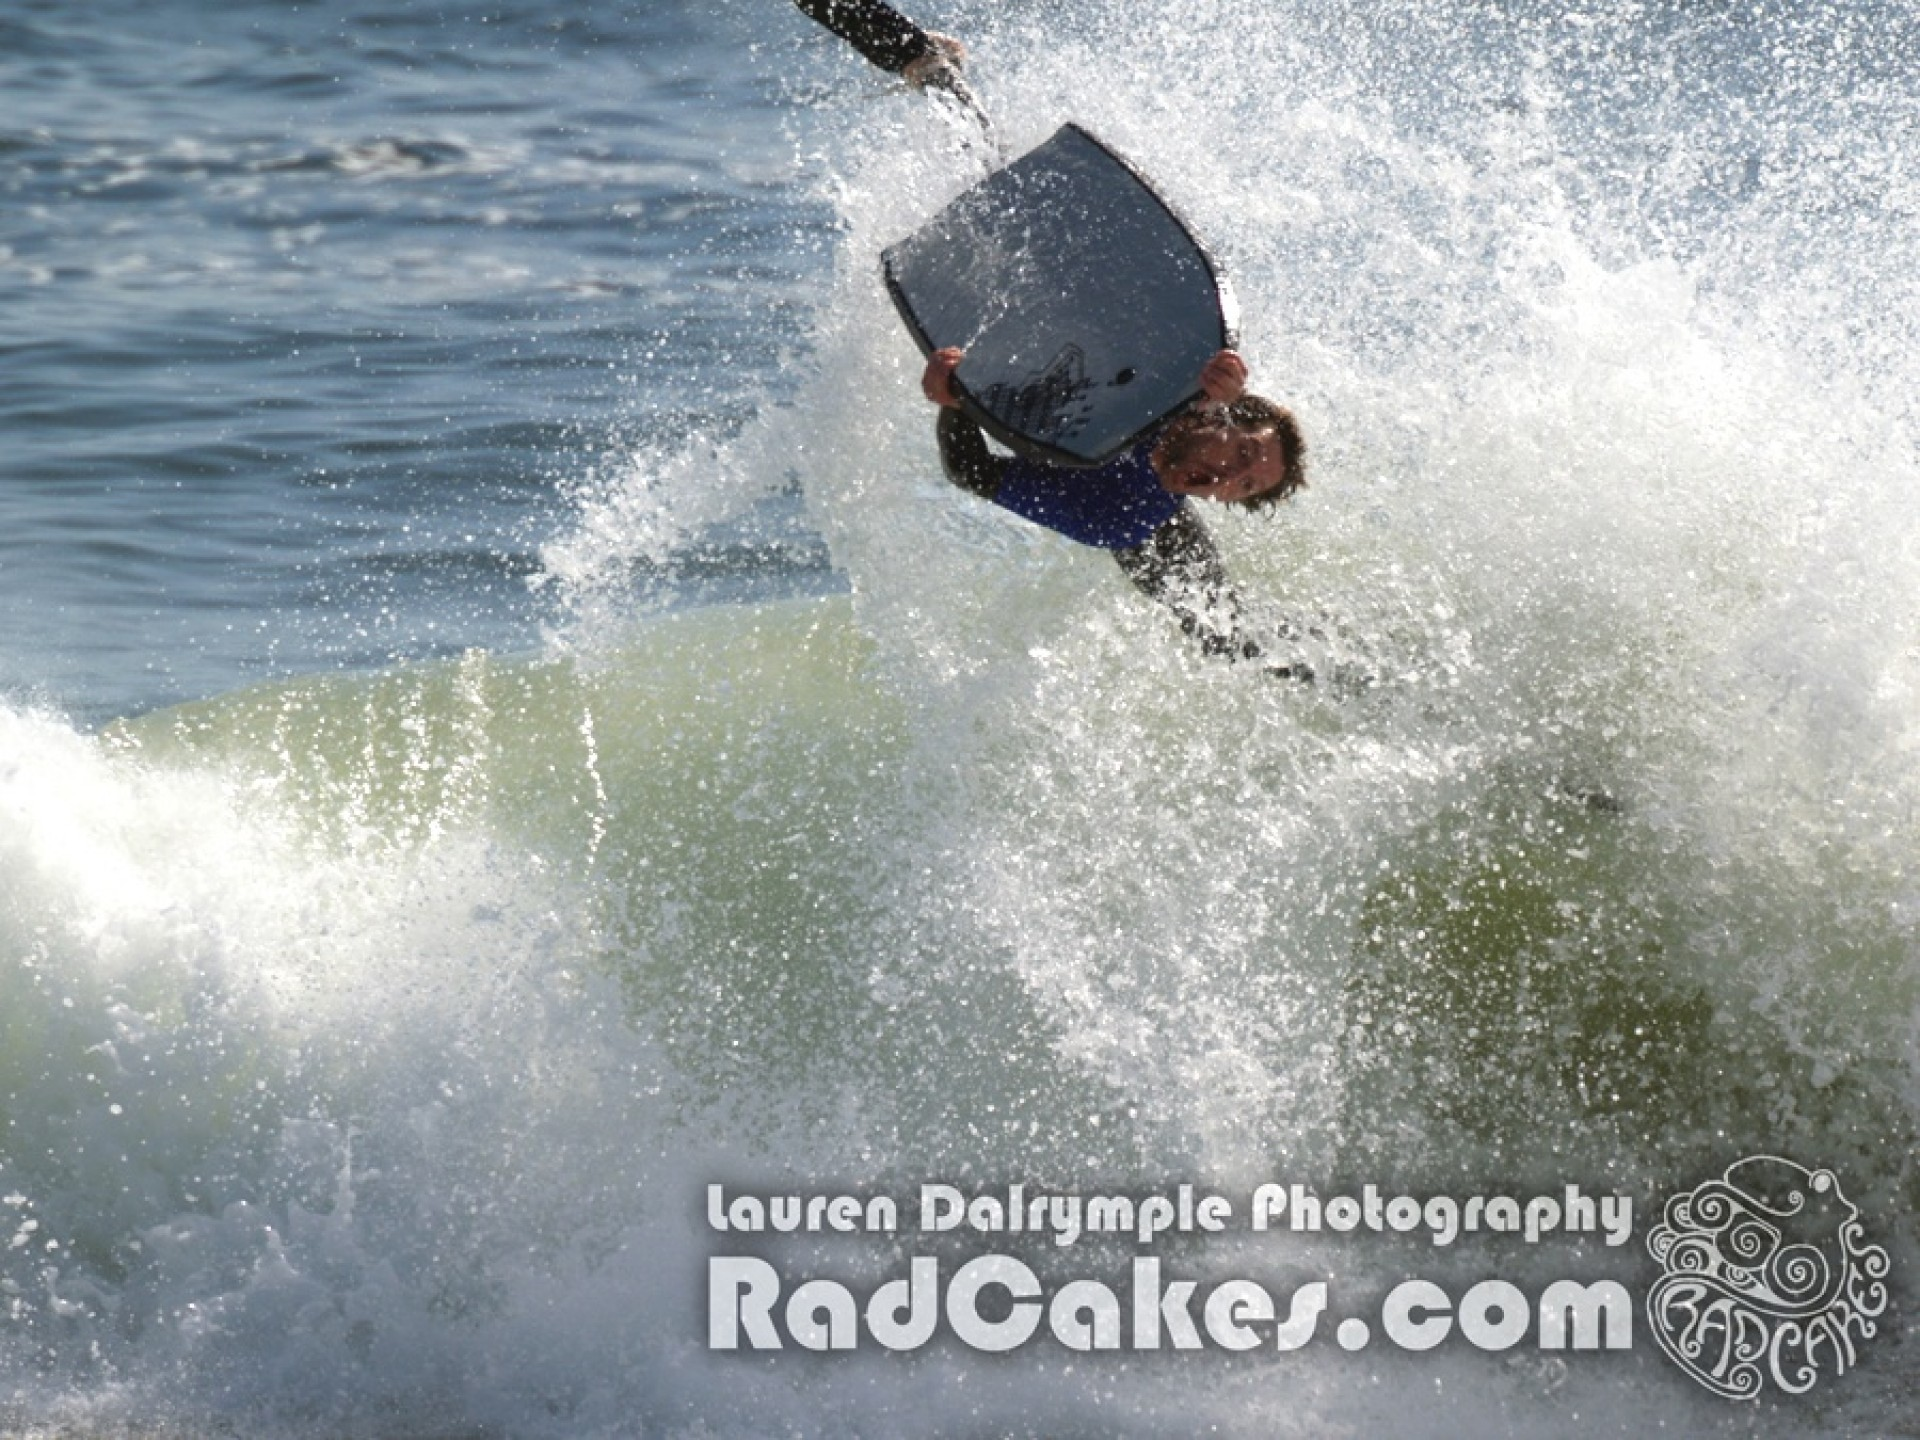 RadCakes's photo of Manasquan